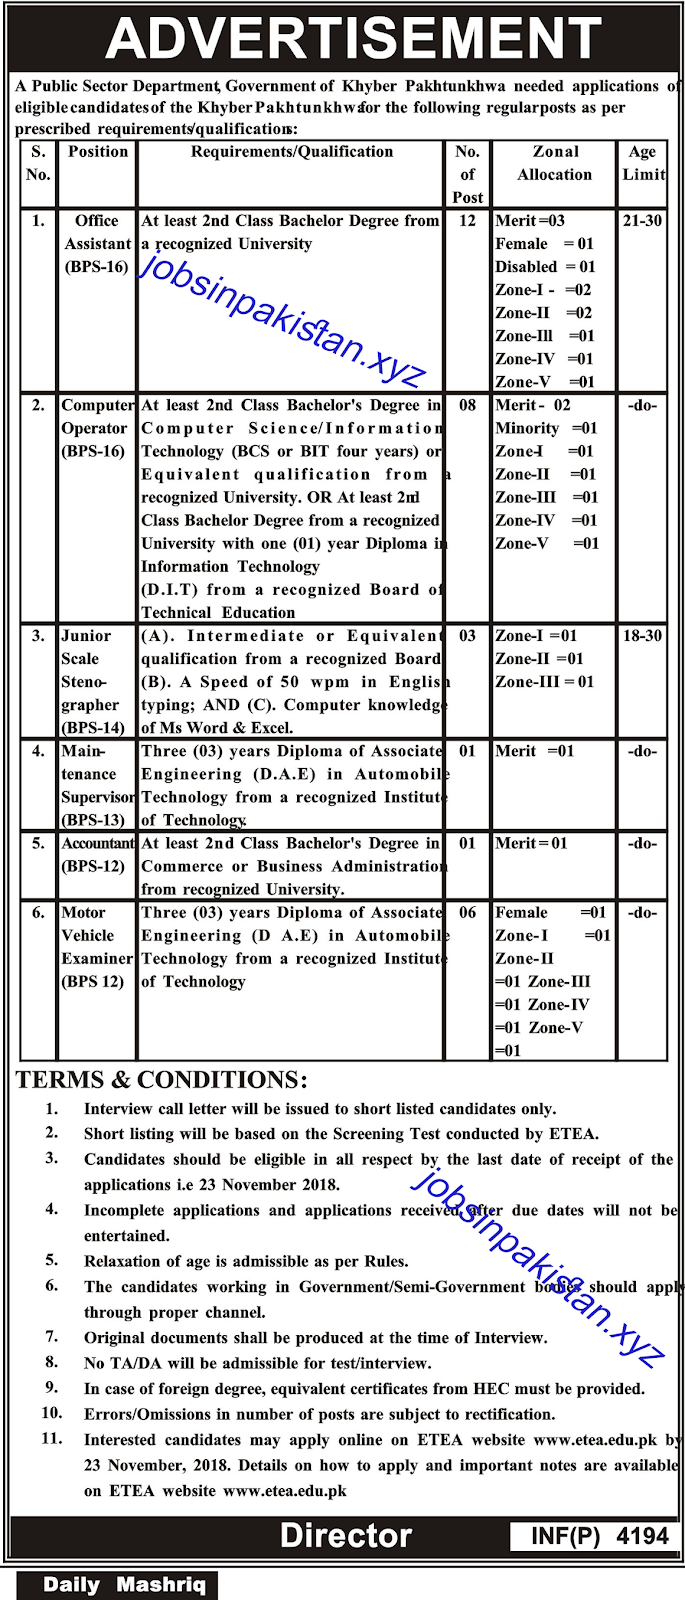 Advertisement for Khyber Pakhtunkhwa Government Jobs 2018